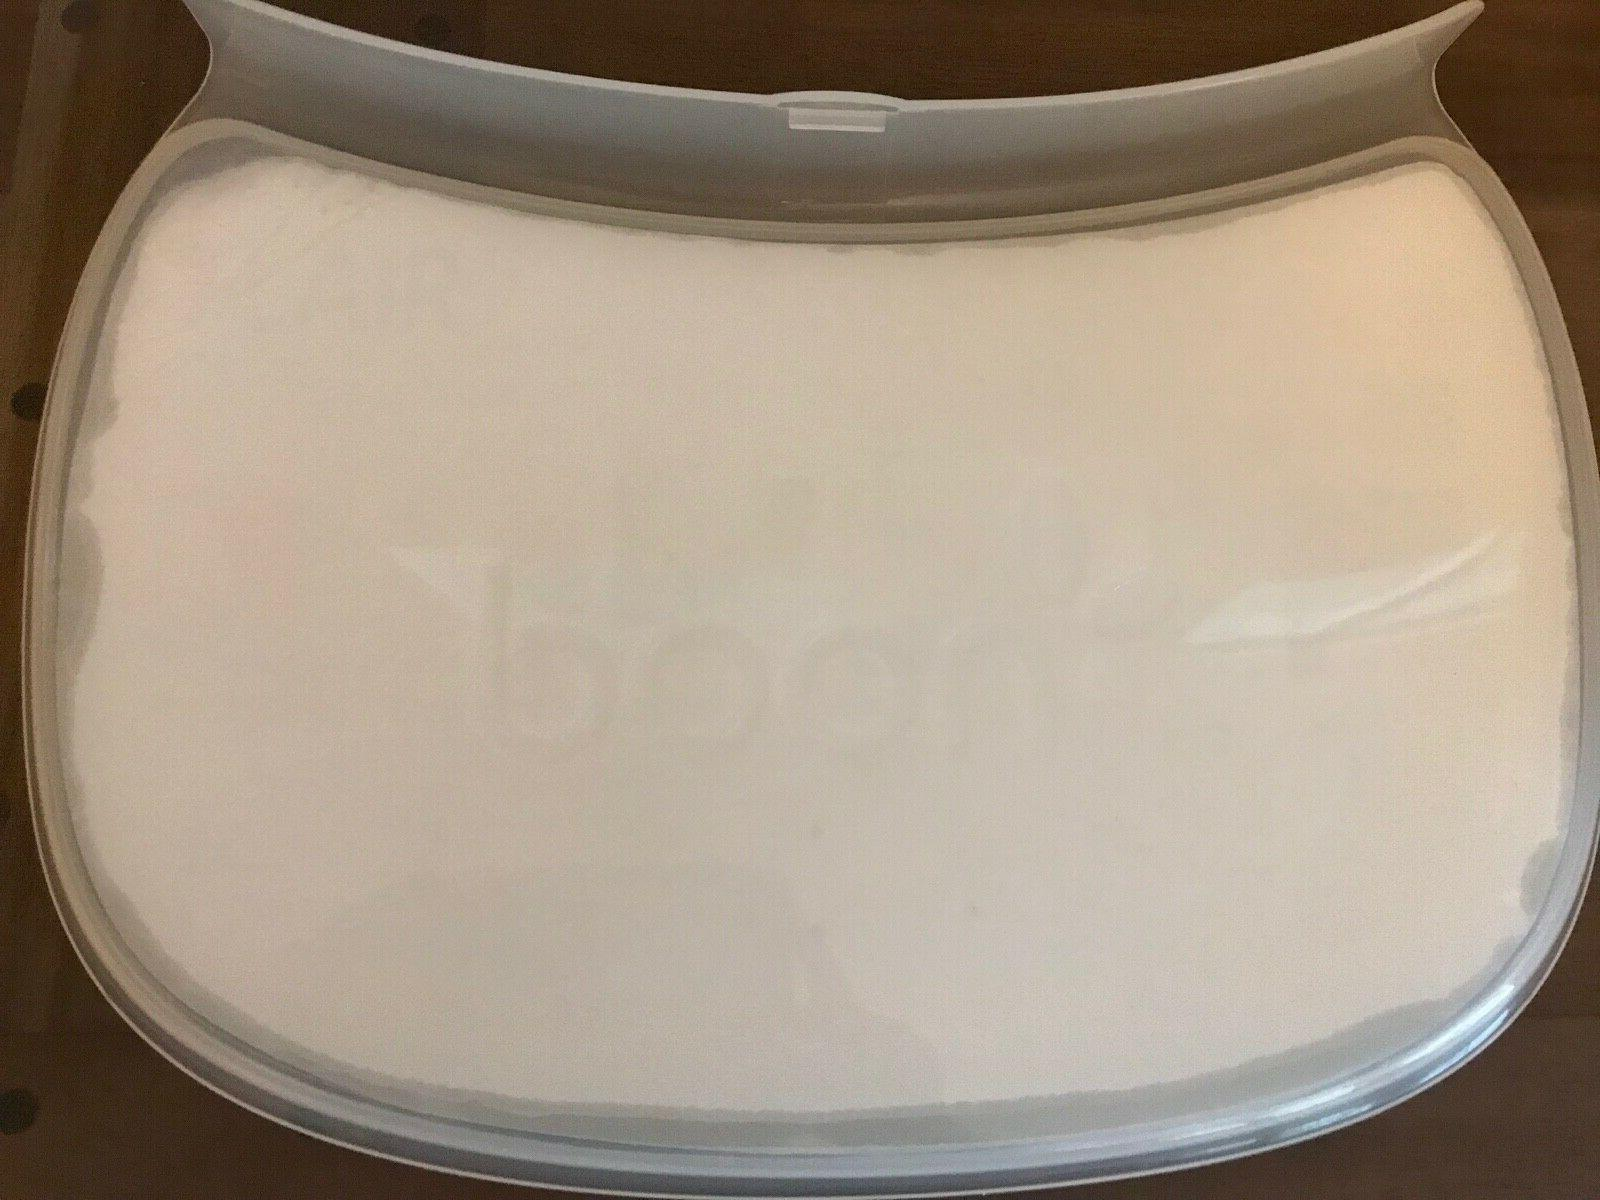 Boon Flair Replacement Liner Dishwasher safe